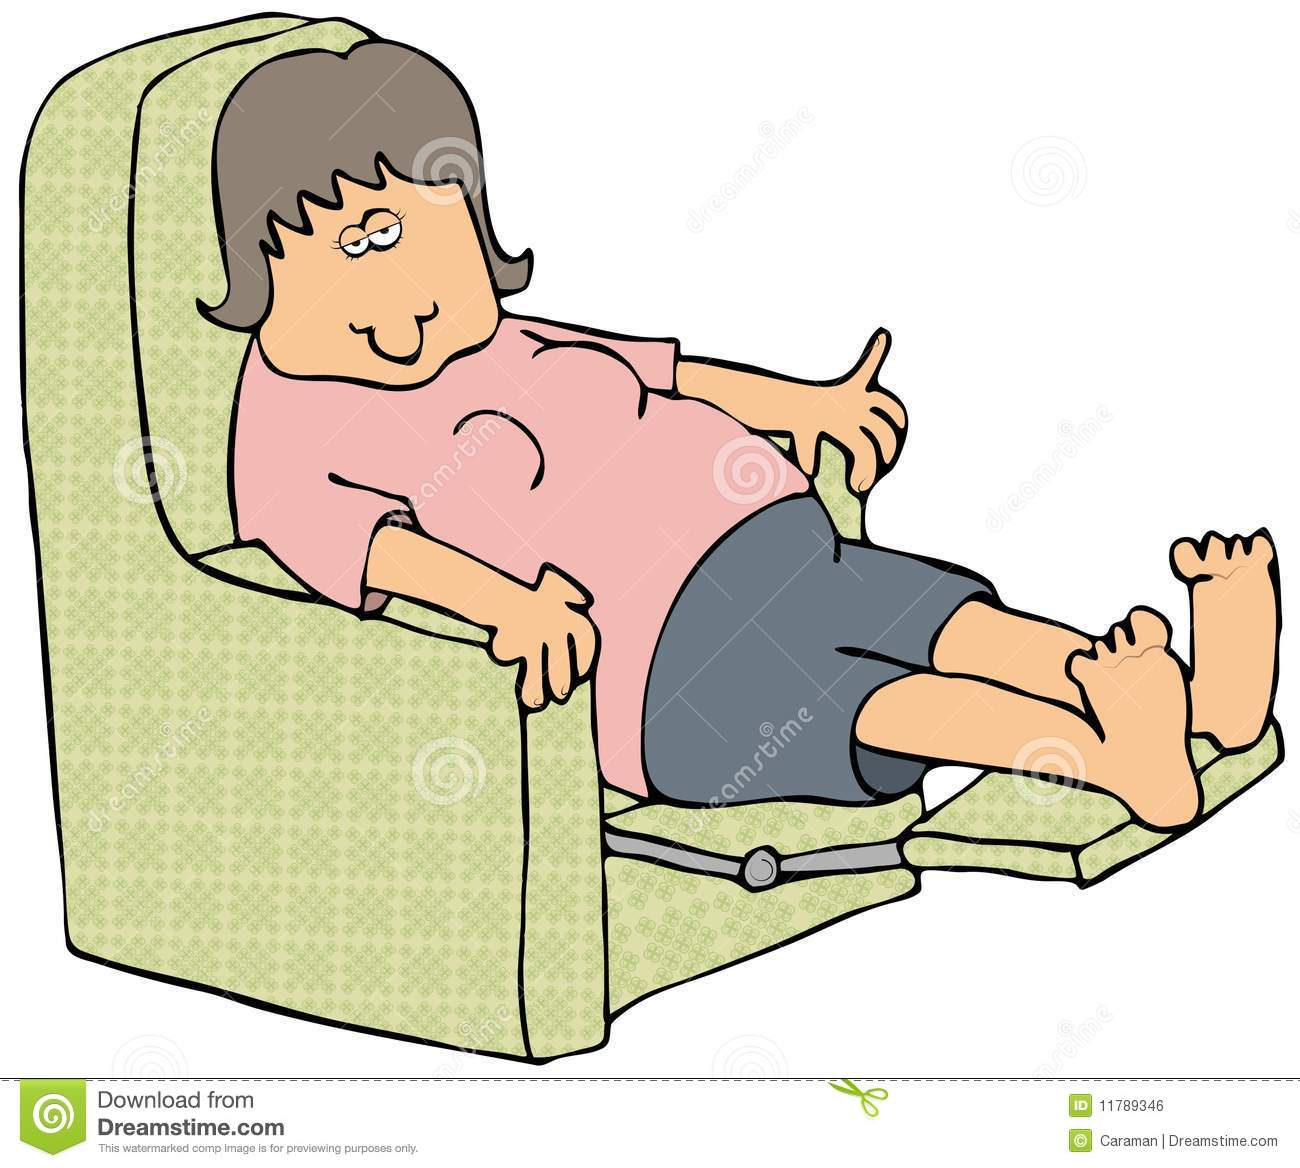 Woman On A Recliner Royalty Free Stock Image Image 11789346 : woman recliner 11789346 from www.dreamstime.com size 1300 x 1168 jpeg 133kB